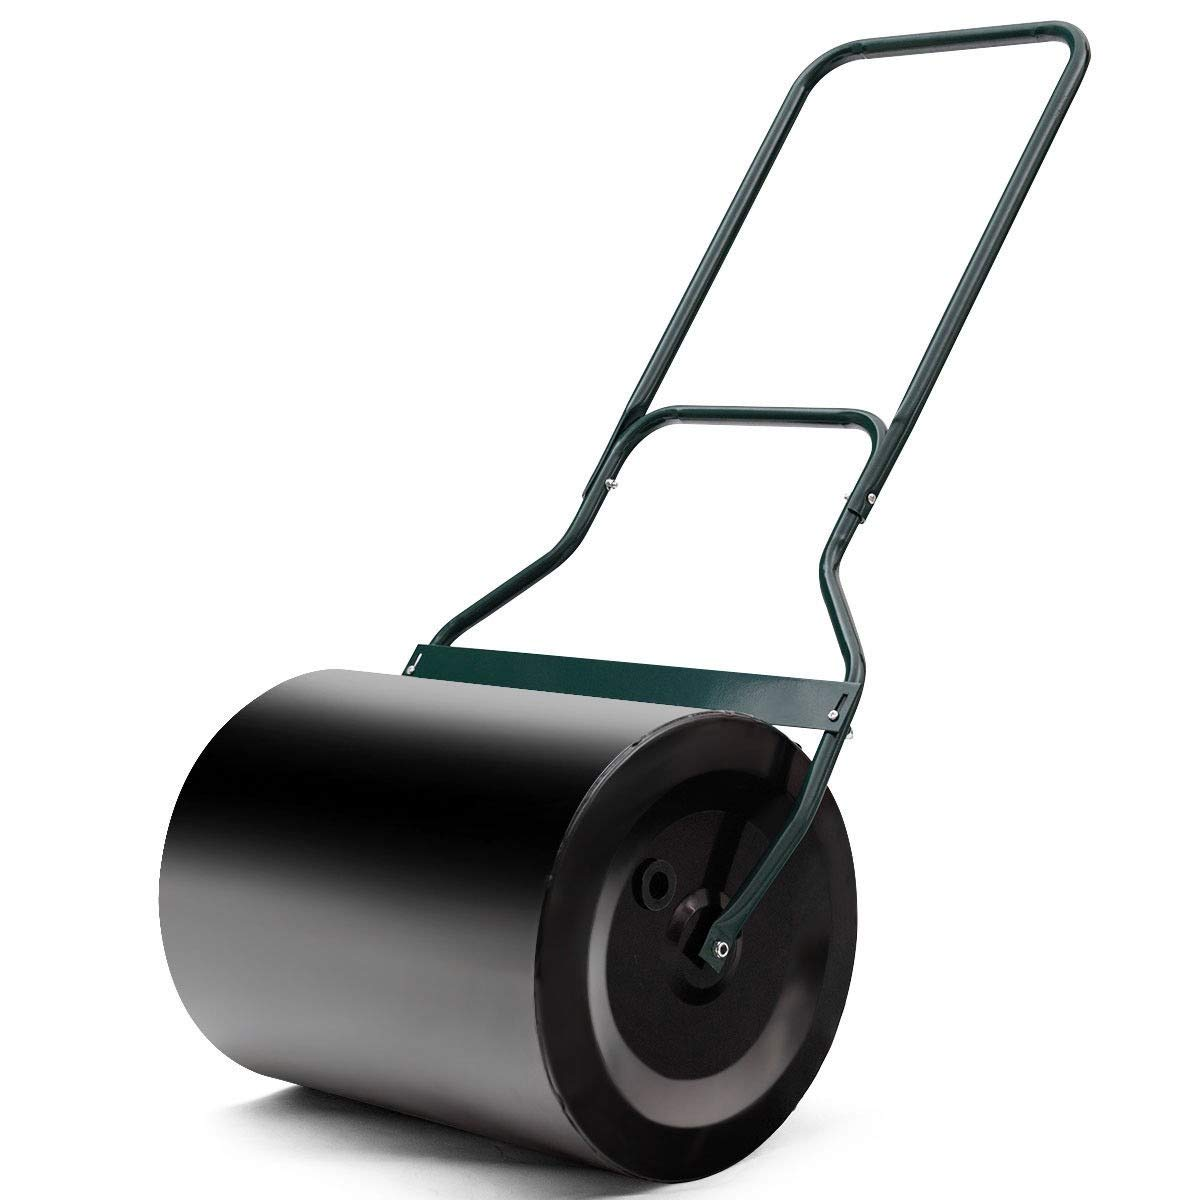 King77777 Heavy Duty Poly Push Tow Lawn Roller Poly Practical Functional Useful Compact Size Portable Beautiful and Fashionable Color